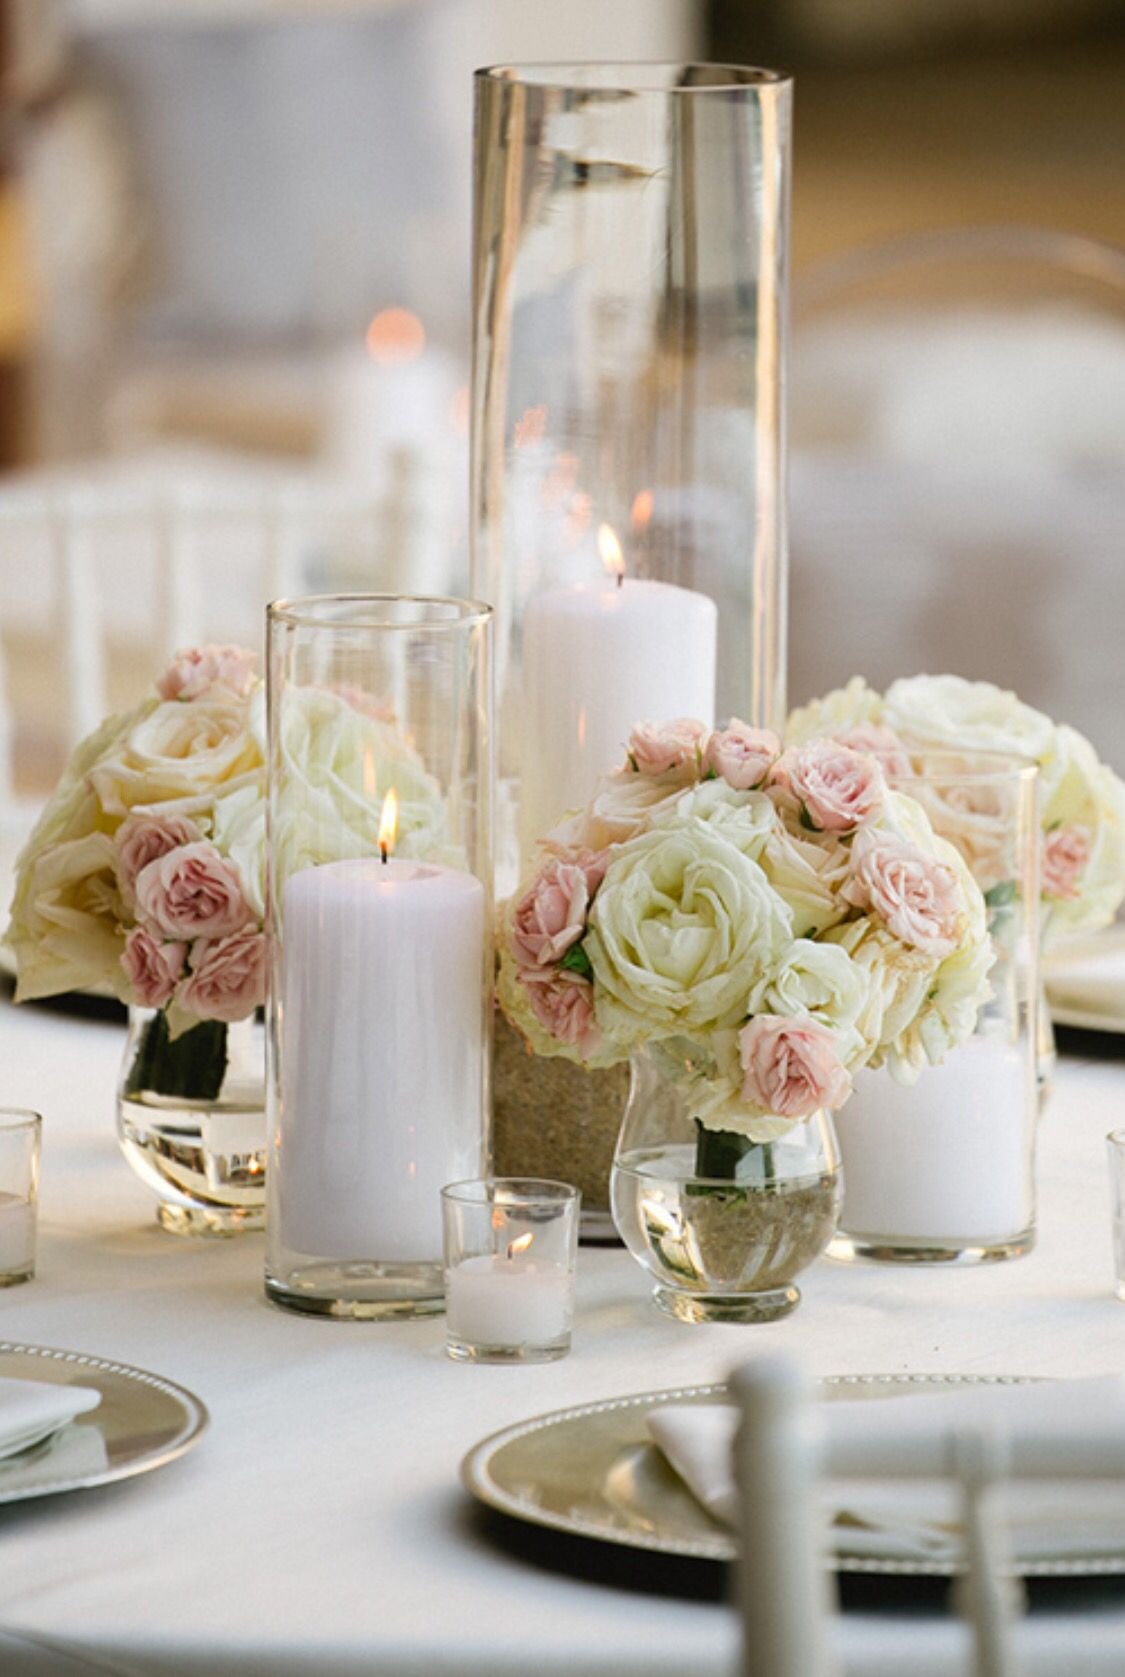 Wedding decorations with lights november 2018 Centro de mesa  On the th of November    Pinterest